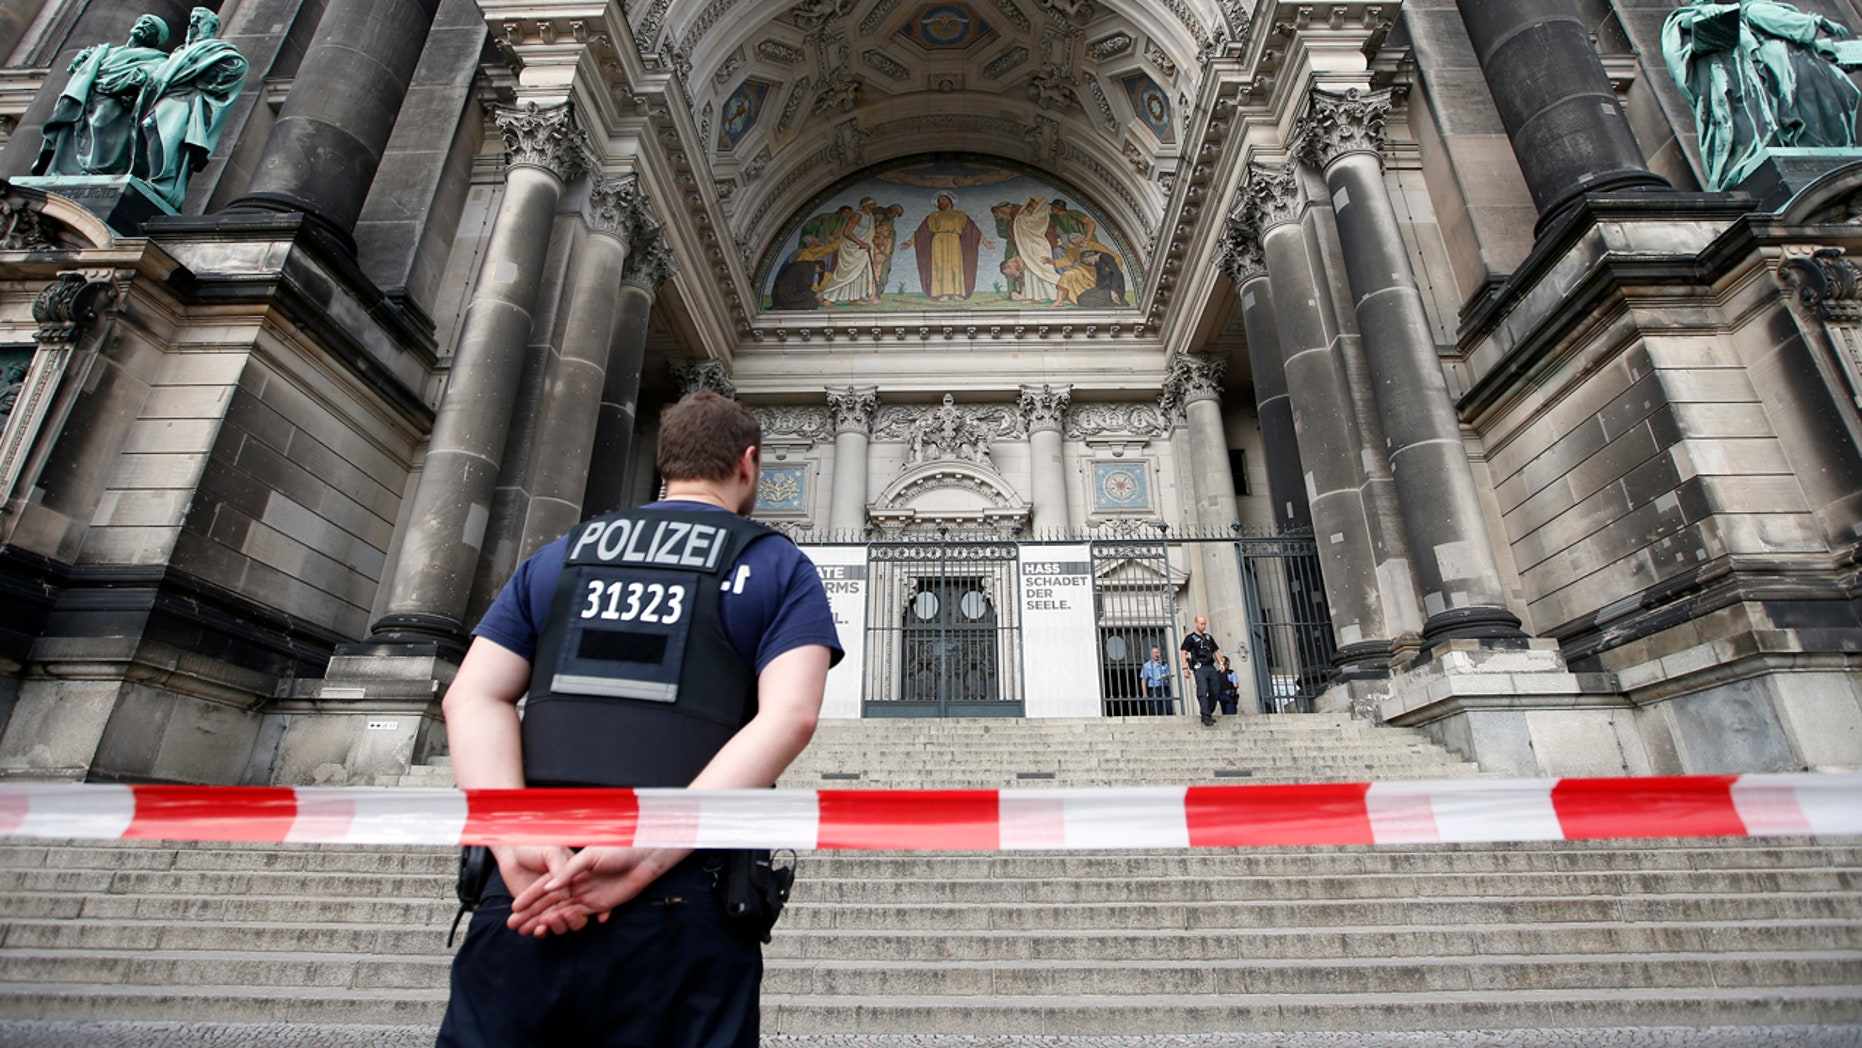 Police opened fire Sunday at a man who was rampaging near Berlin's cathedral, wounding him in the legs.